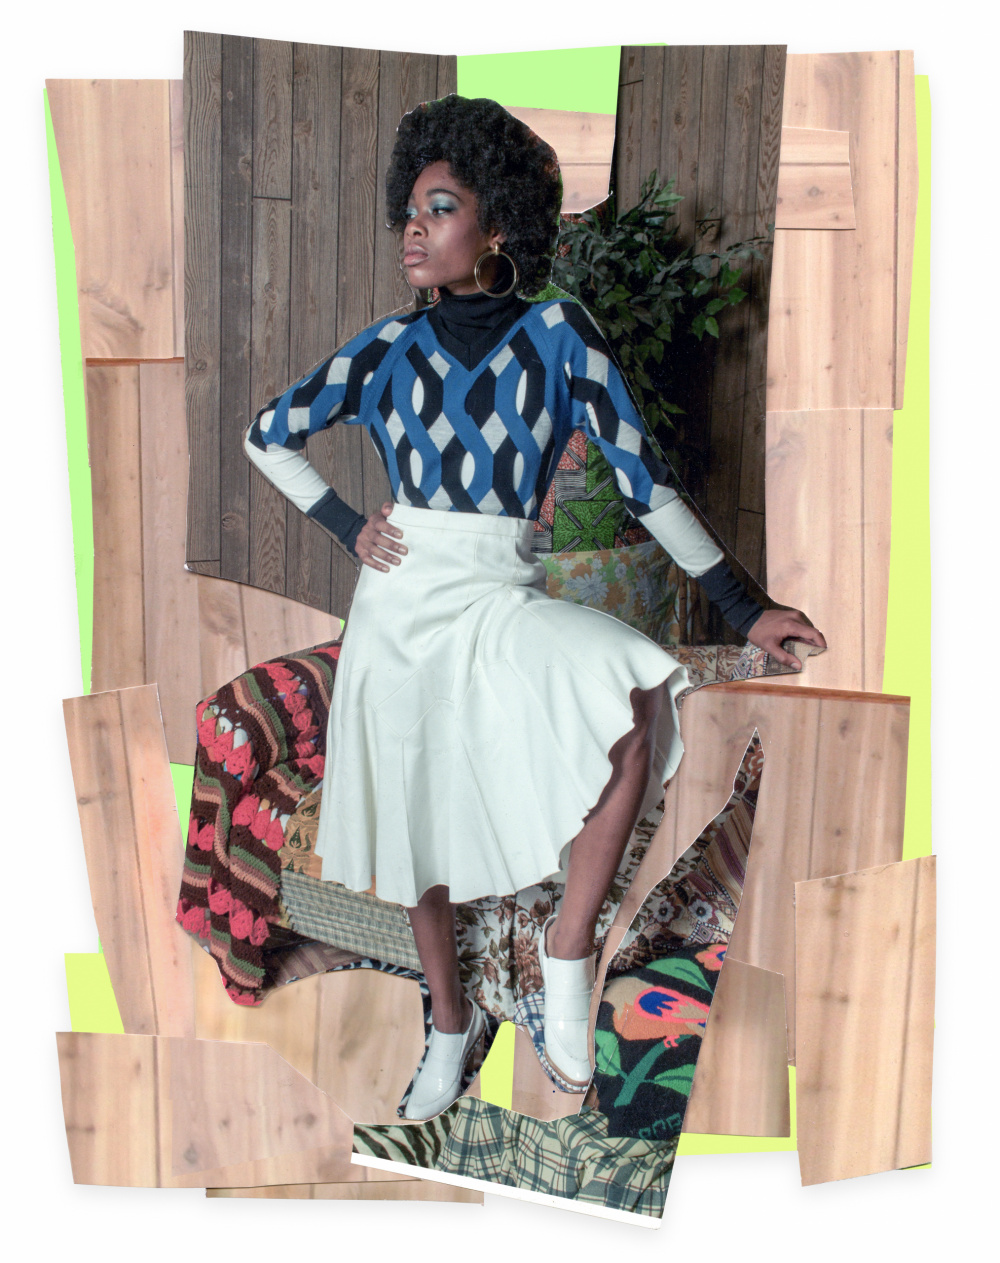 Mickalene Thomas, Liz with White Skirt and White Shoes, 2015. Colour photograph and paper collage on archival board, original artwork dimensions 11.25 x 8.5